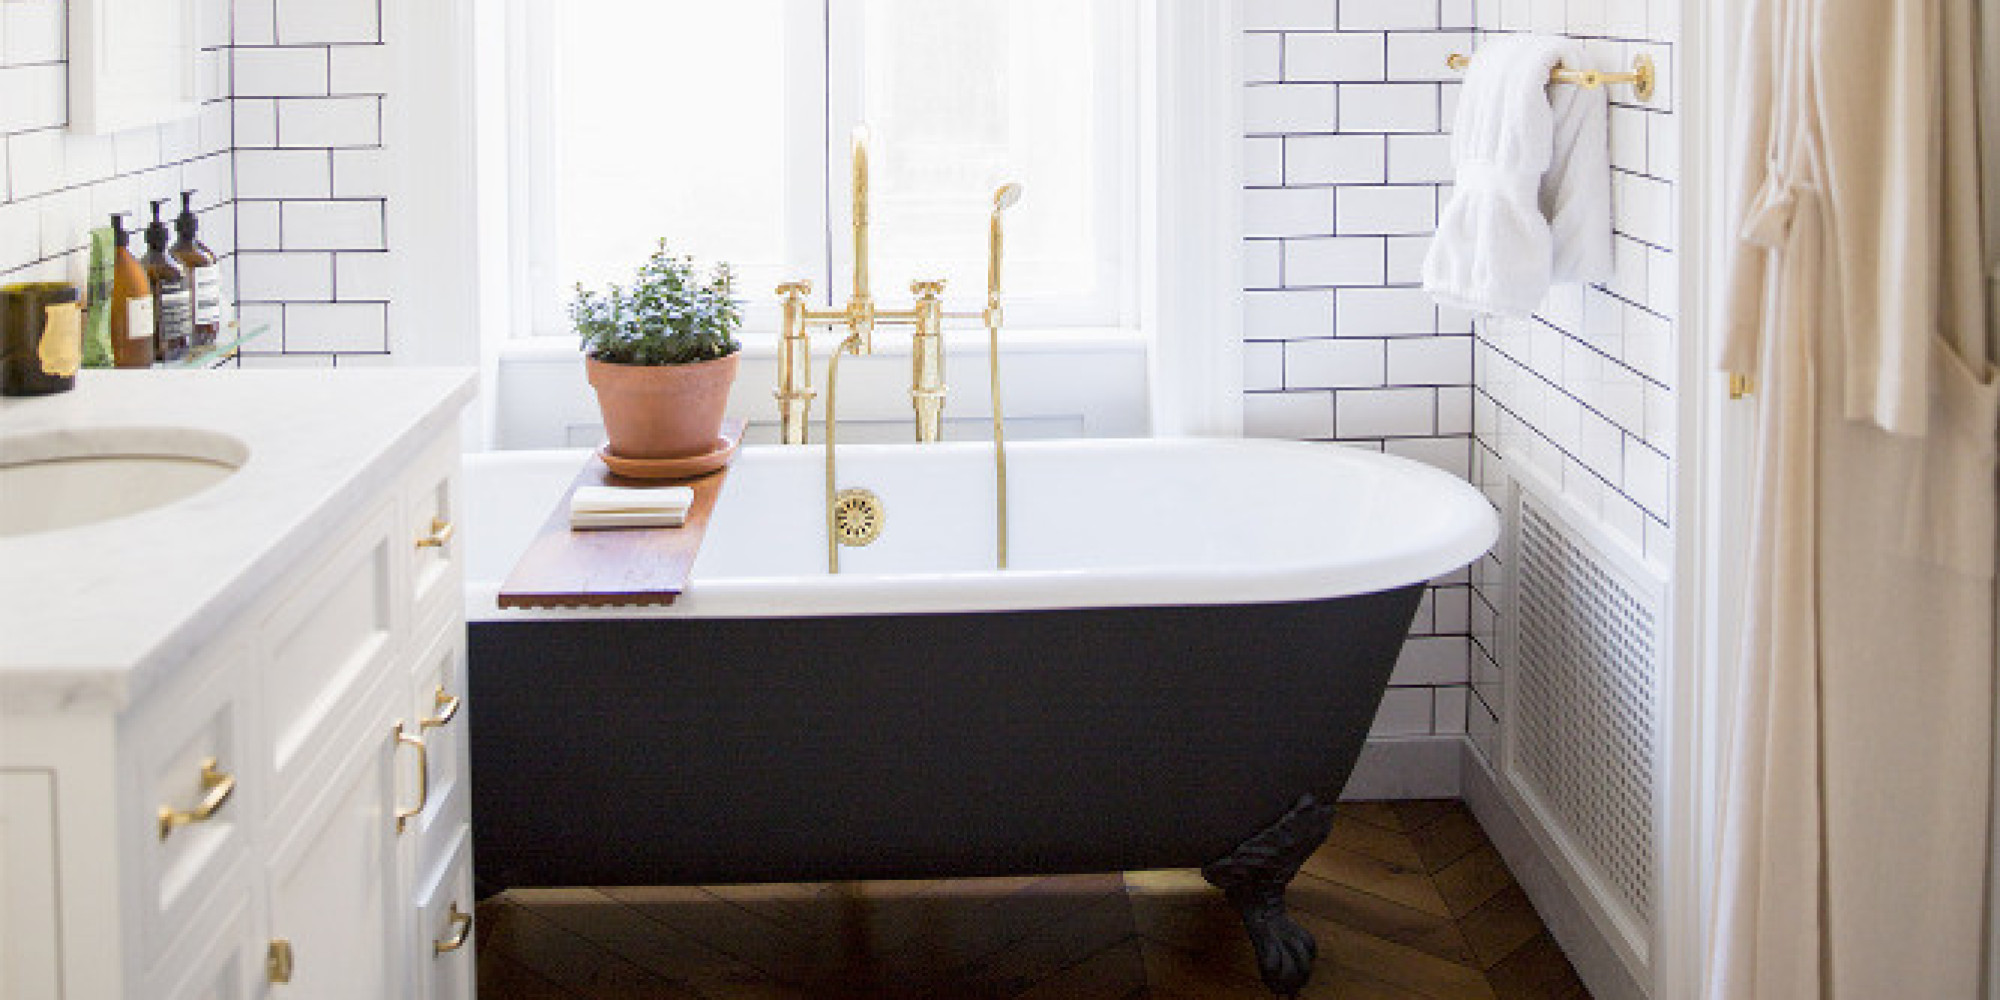 Bathroom Tiles Trends 2015 the 6 biggest bathroom trends of 2015 are what we've been waiting